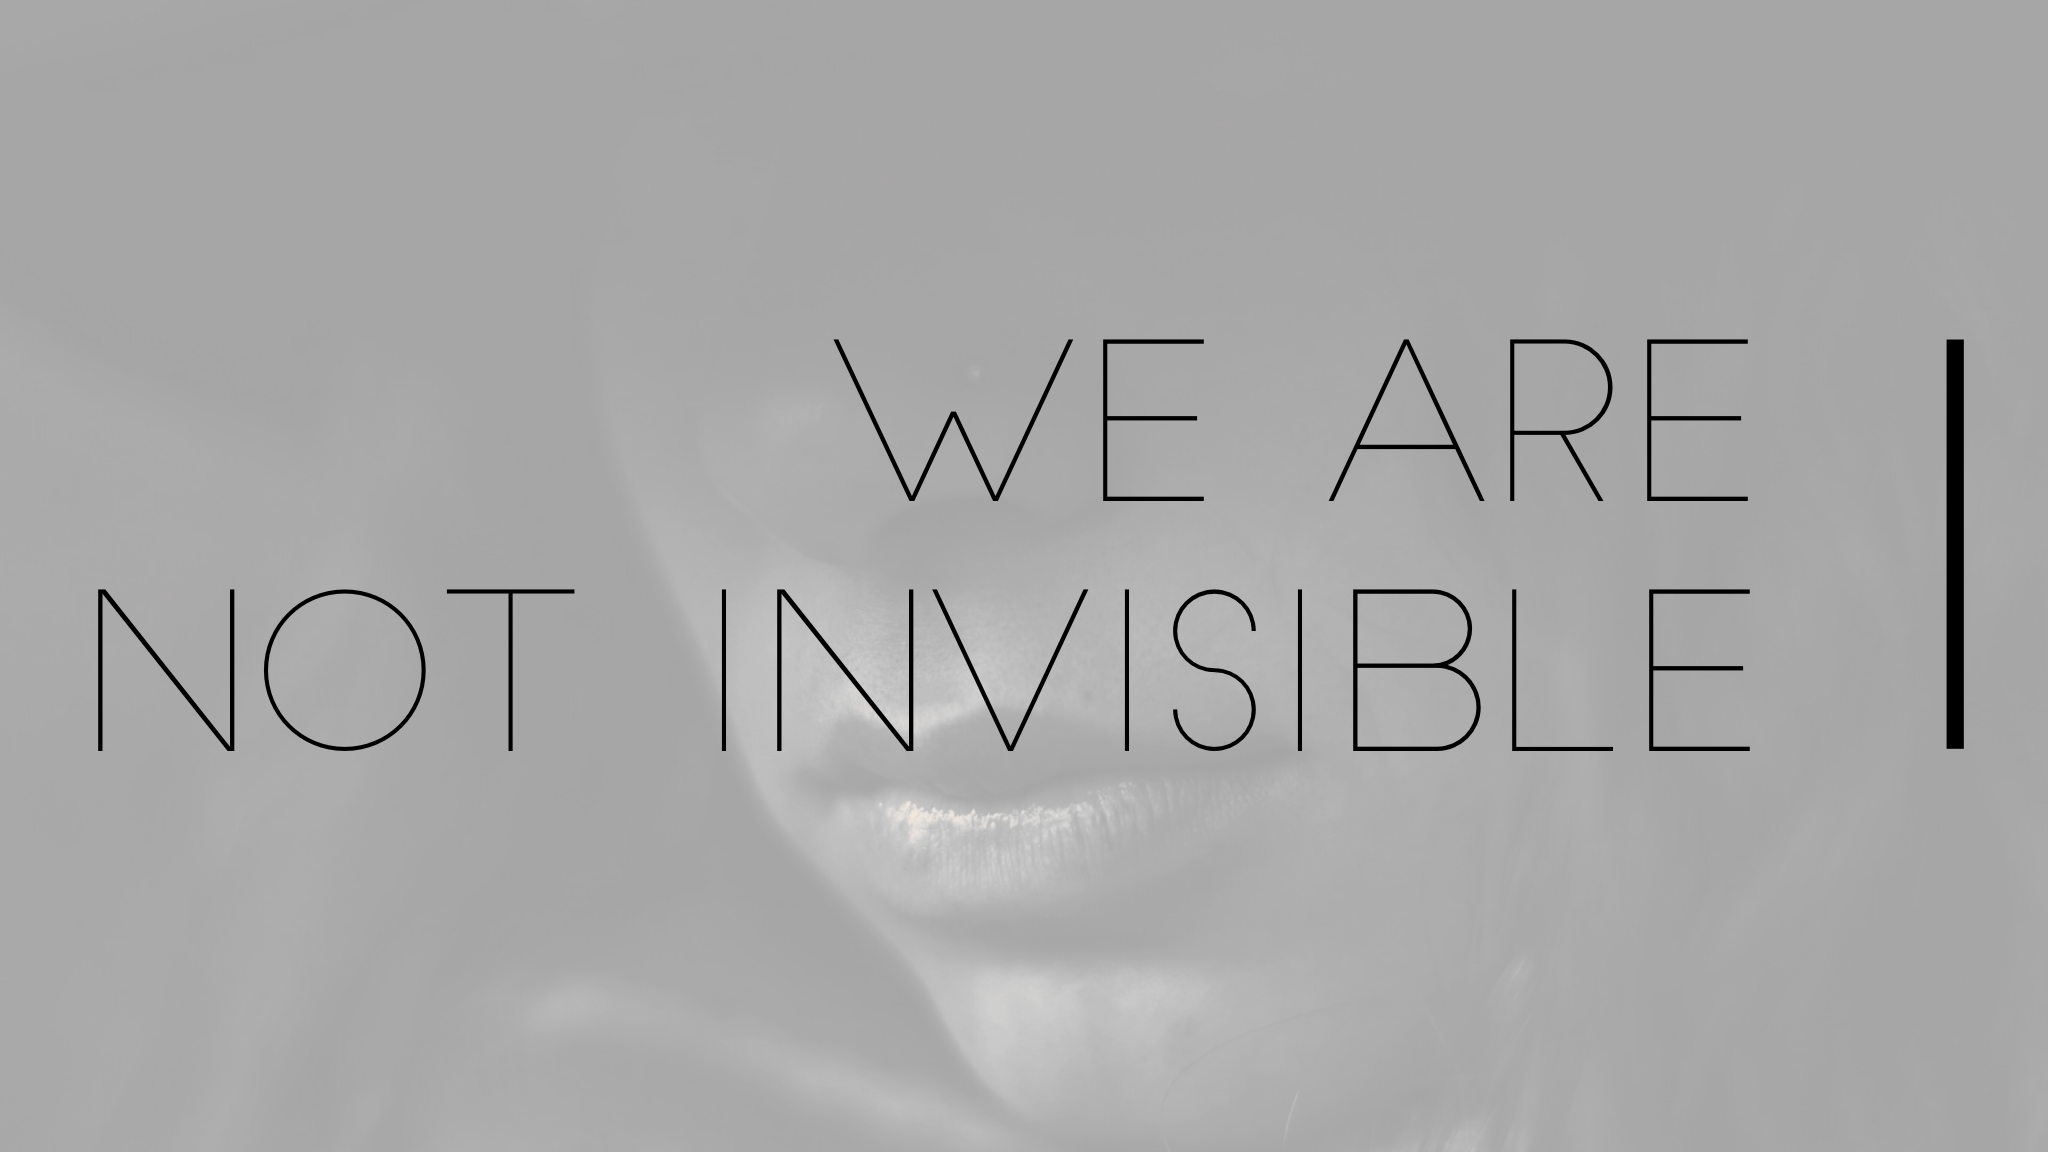 We Are Not Invisible